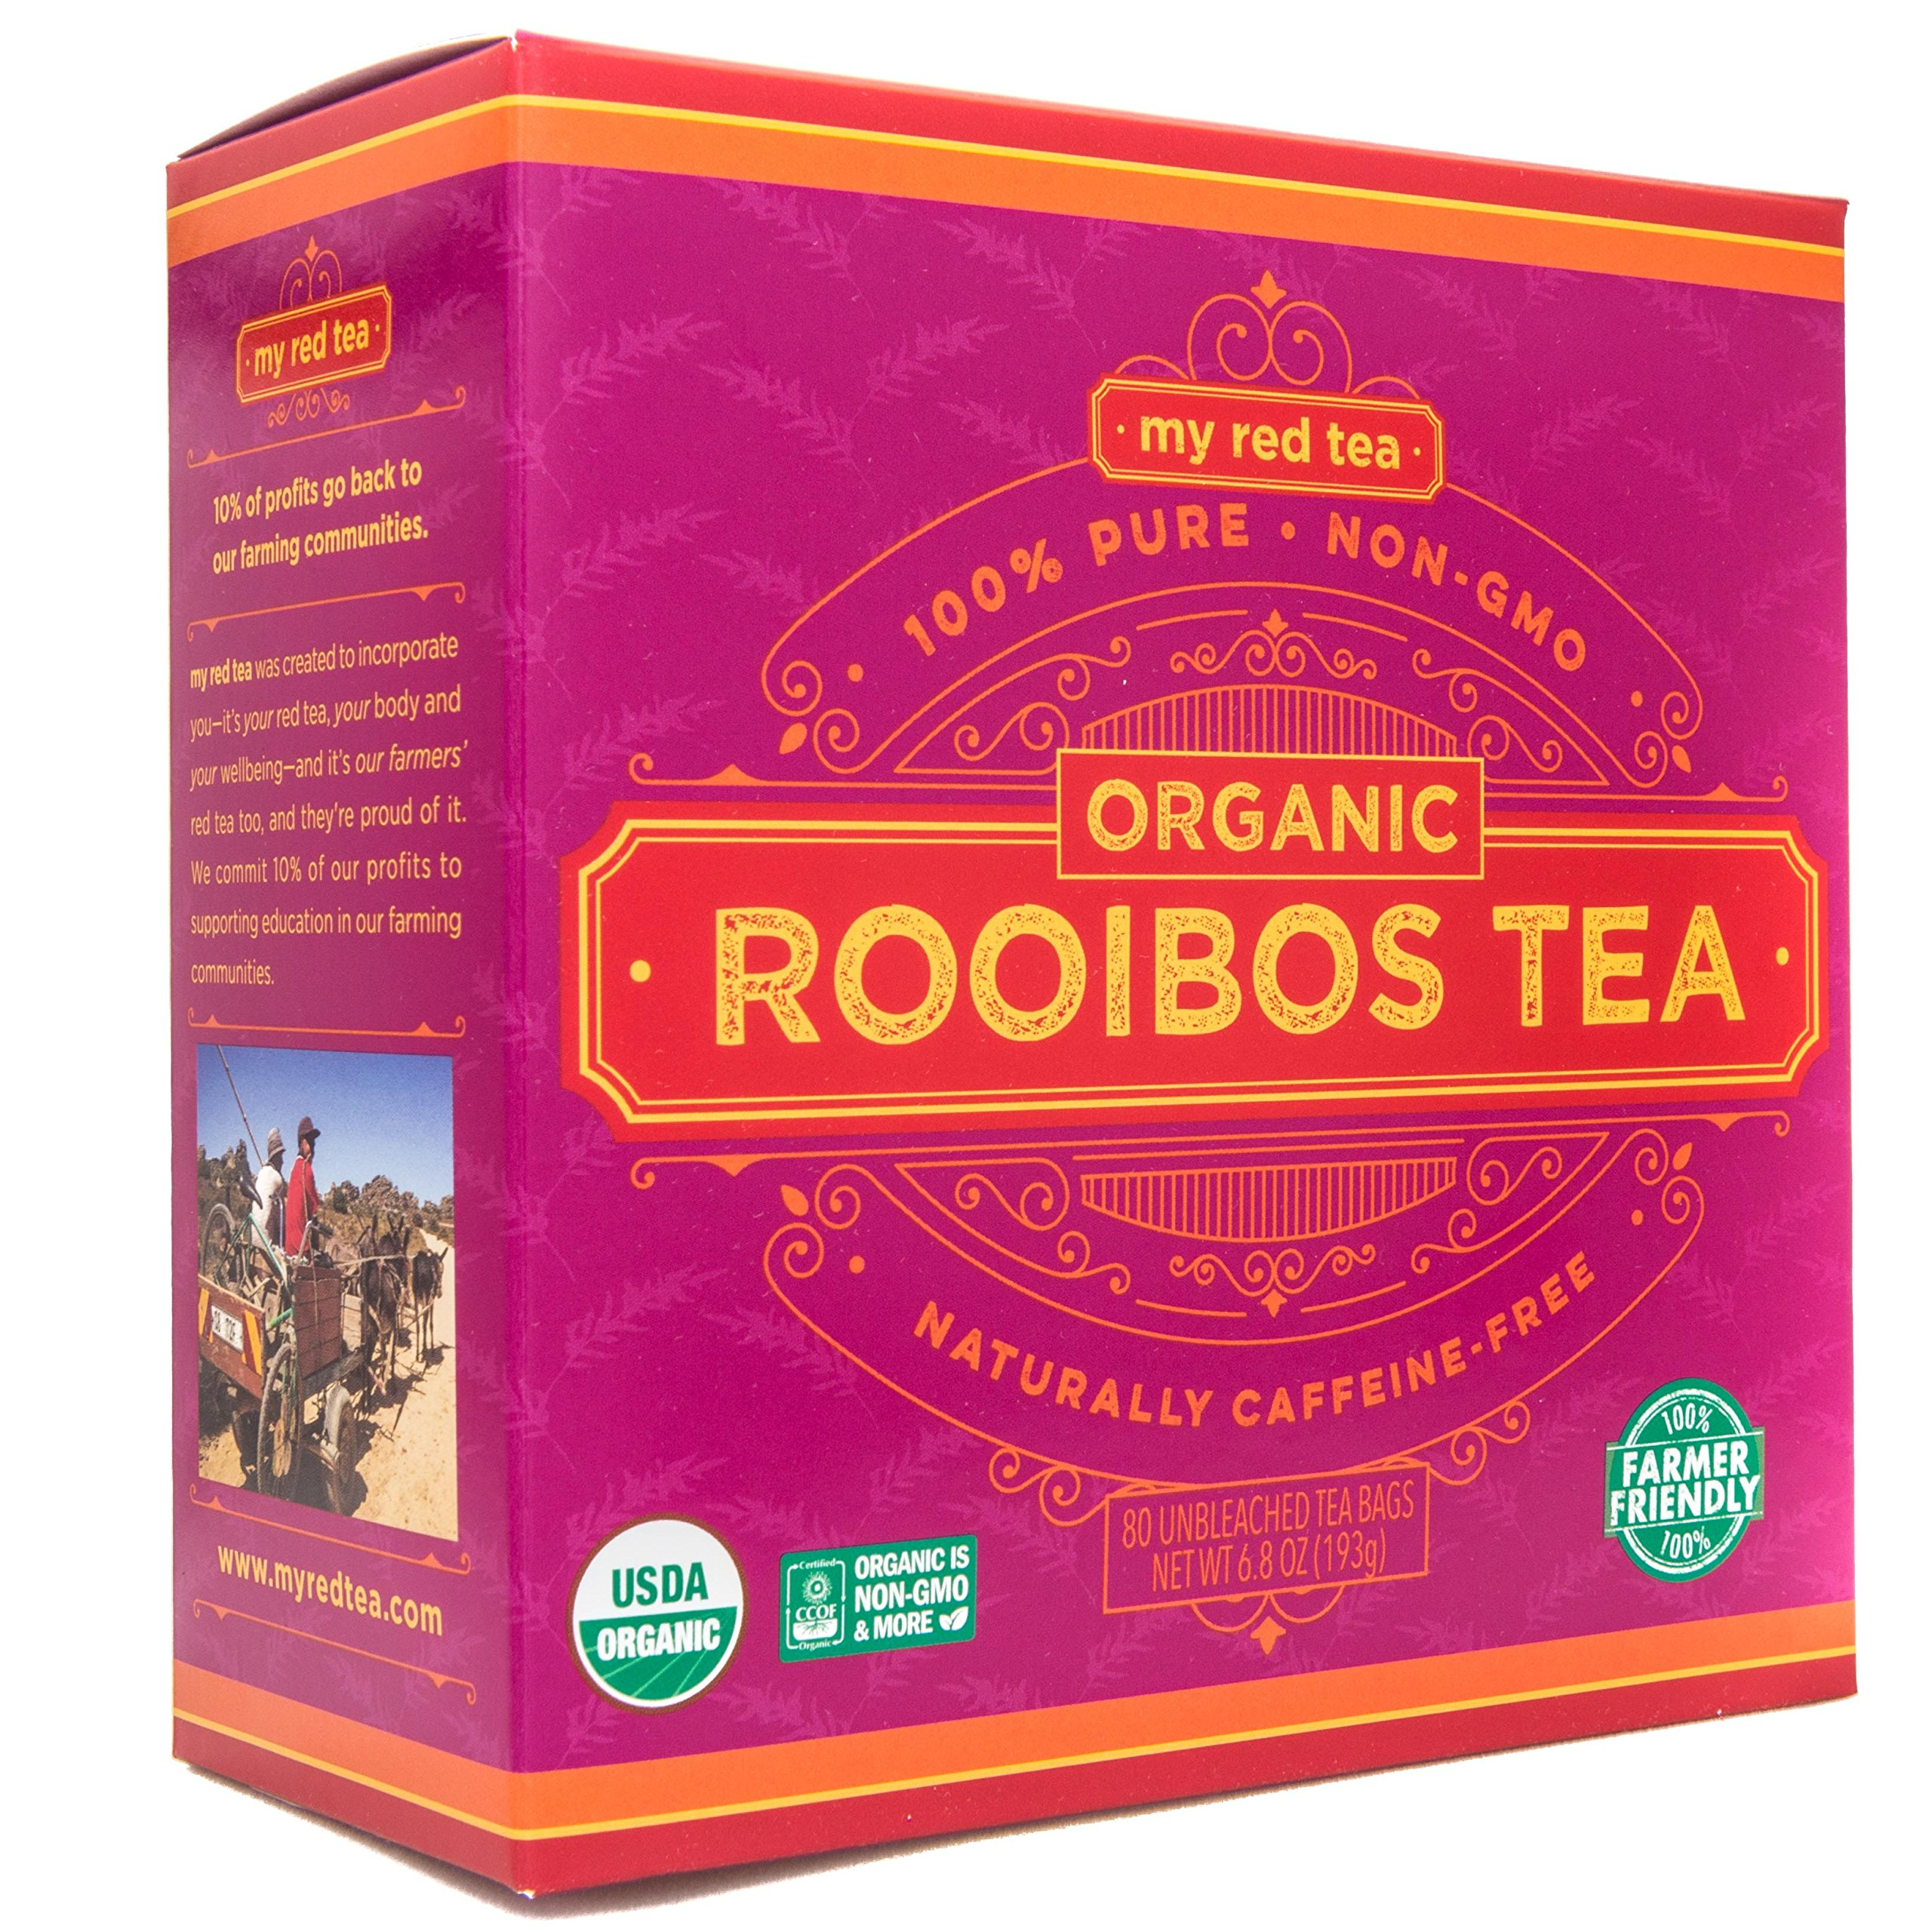 Rooibos Tea, USDA Certified Organic Tea, MY RED TEA. Tagless South African, 100% Pure, Single Origin, Natural, Farmer Friendly, GMO and Caffeine Free (80) by My Red Tea (Image #1)